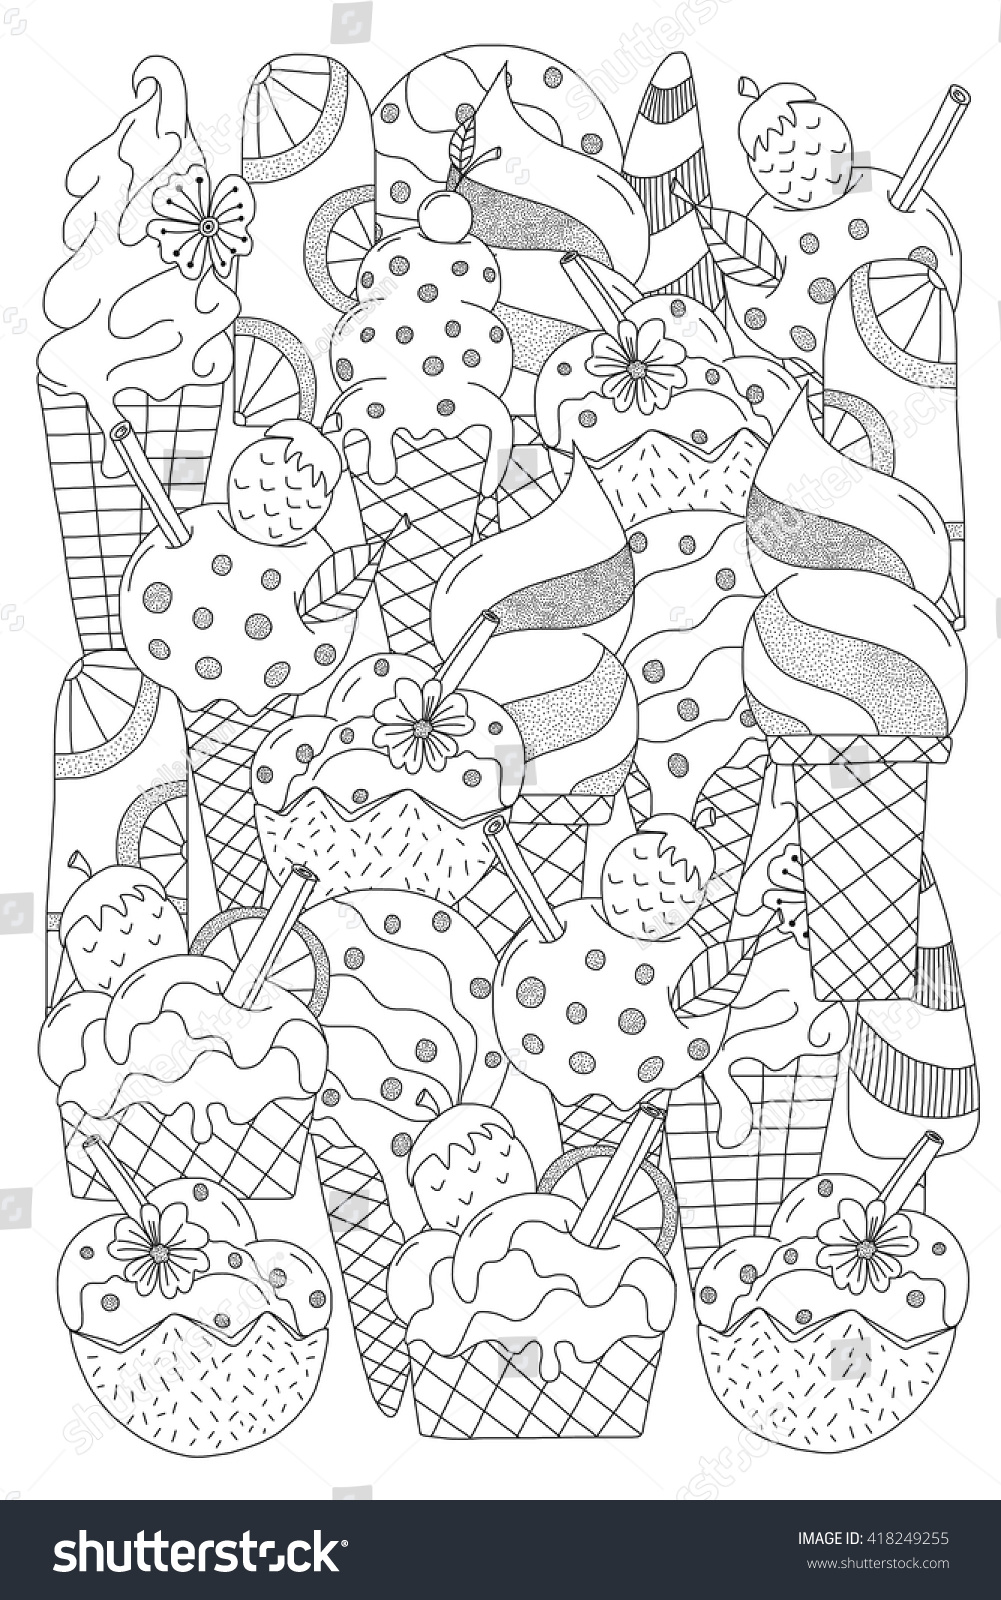 Ice cream hand drawn ethnic patterned in doodle zentangle style coloring book page for adults and child zendala design for relax and meditation